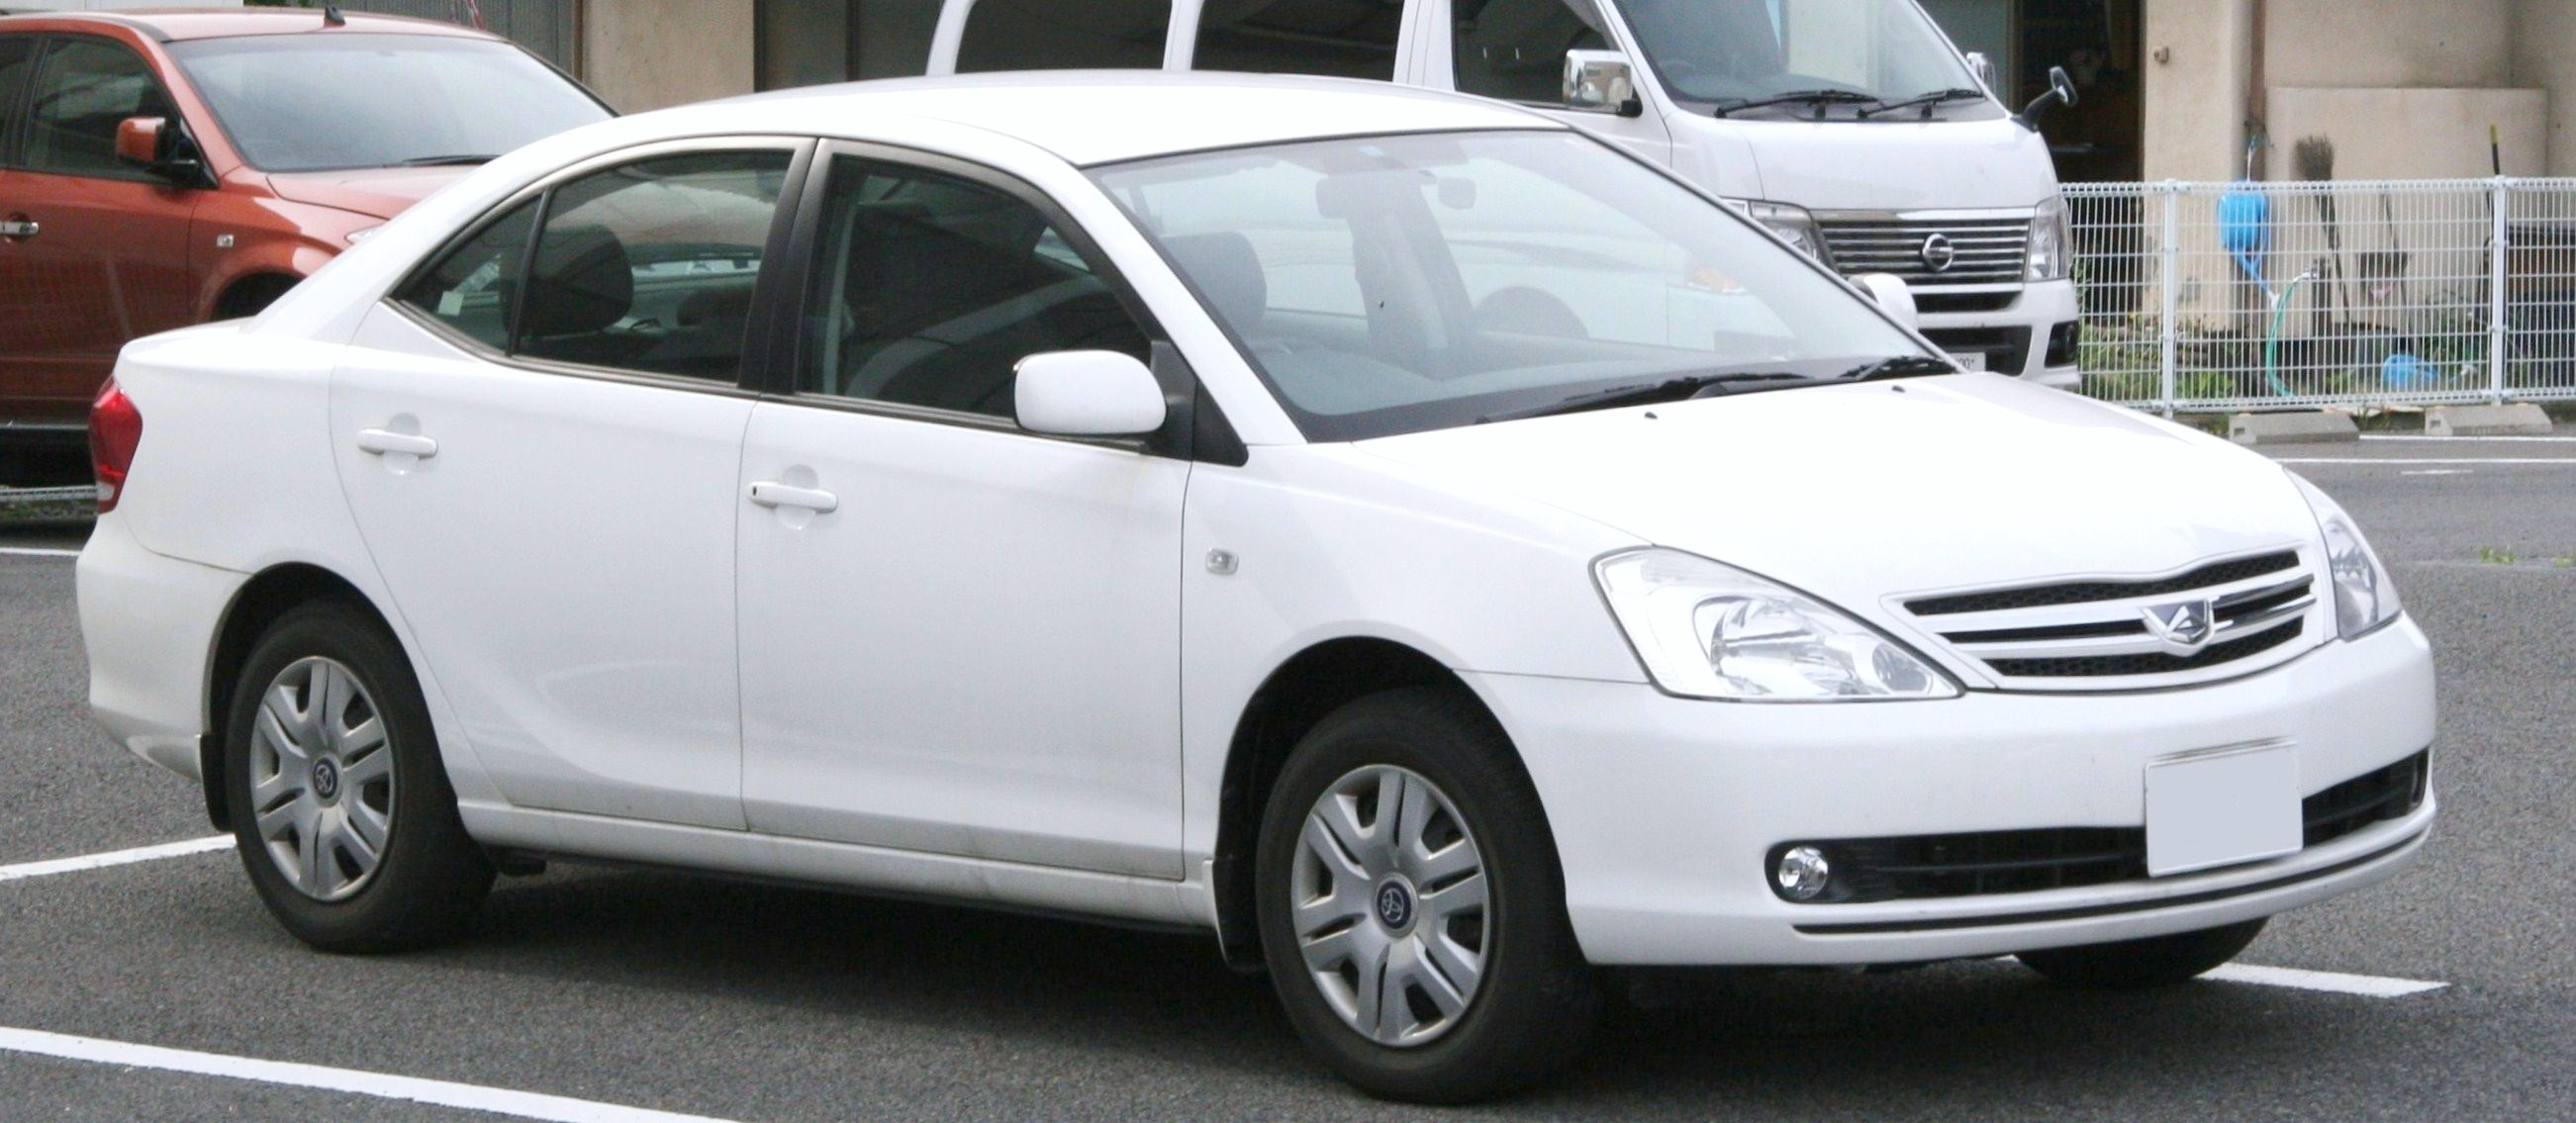 File:2004-2007 Toyota Allion A18.jpg